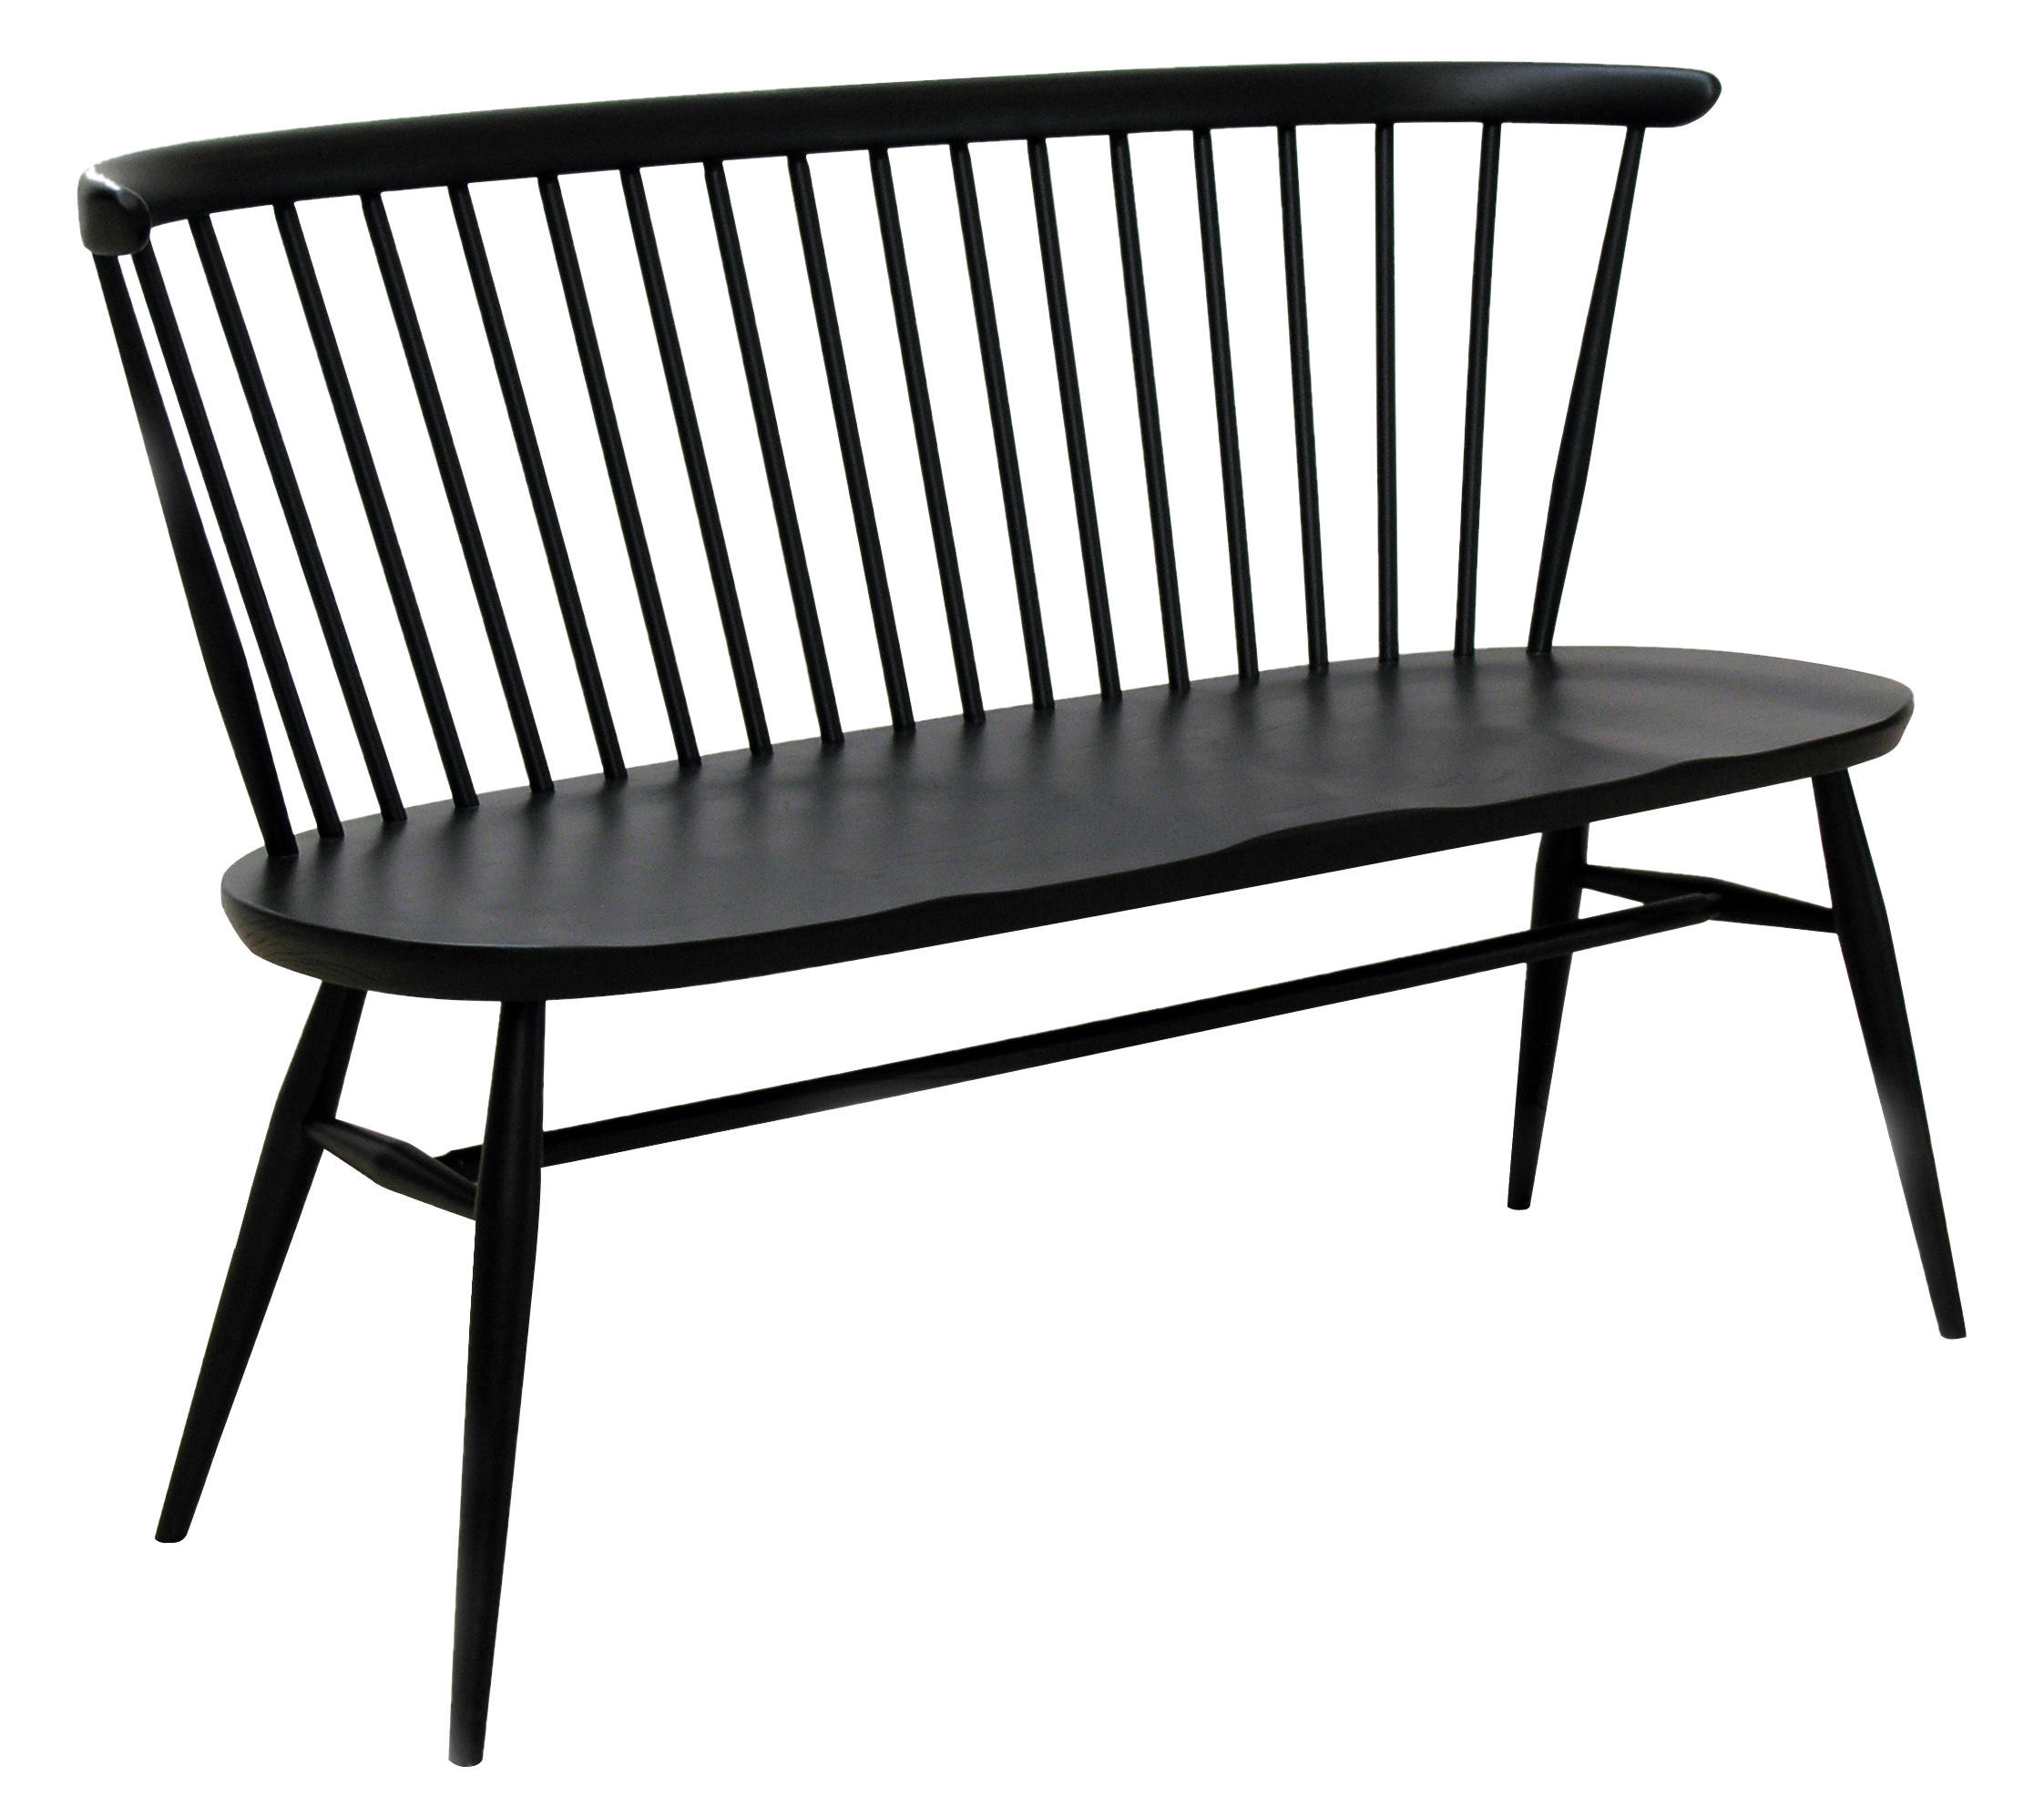 Love Seat Bench With Backrest Reissue 1955 Black By Ercol